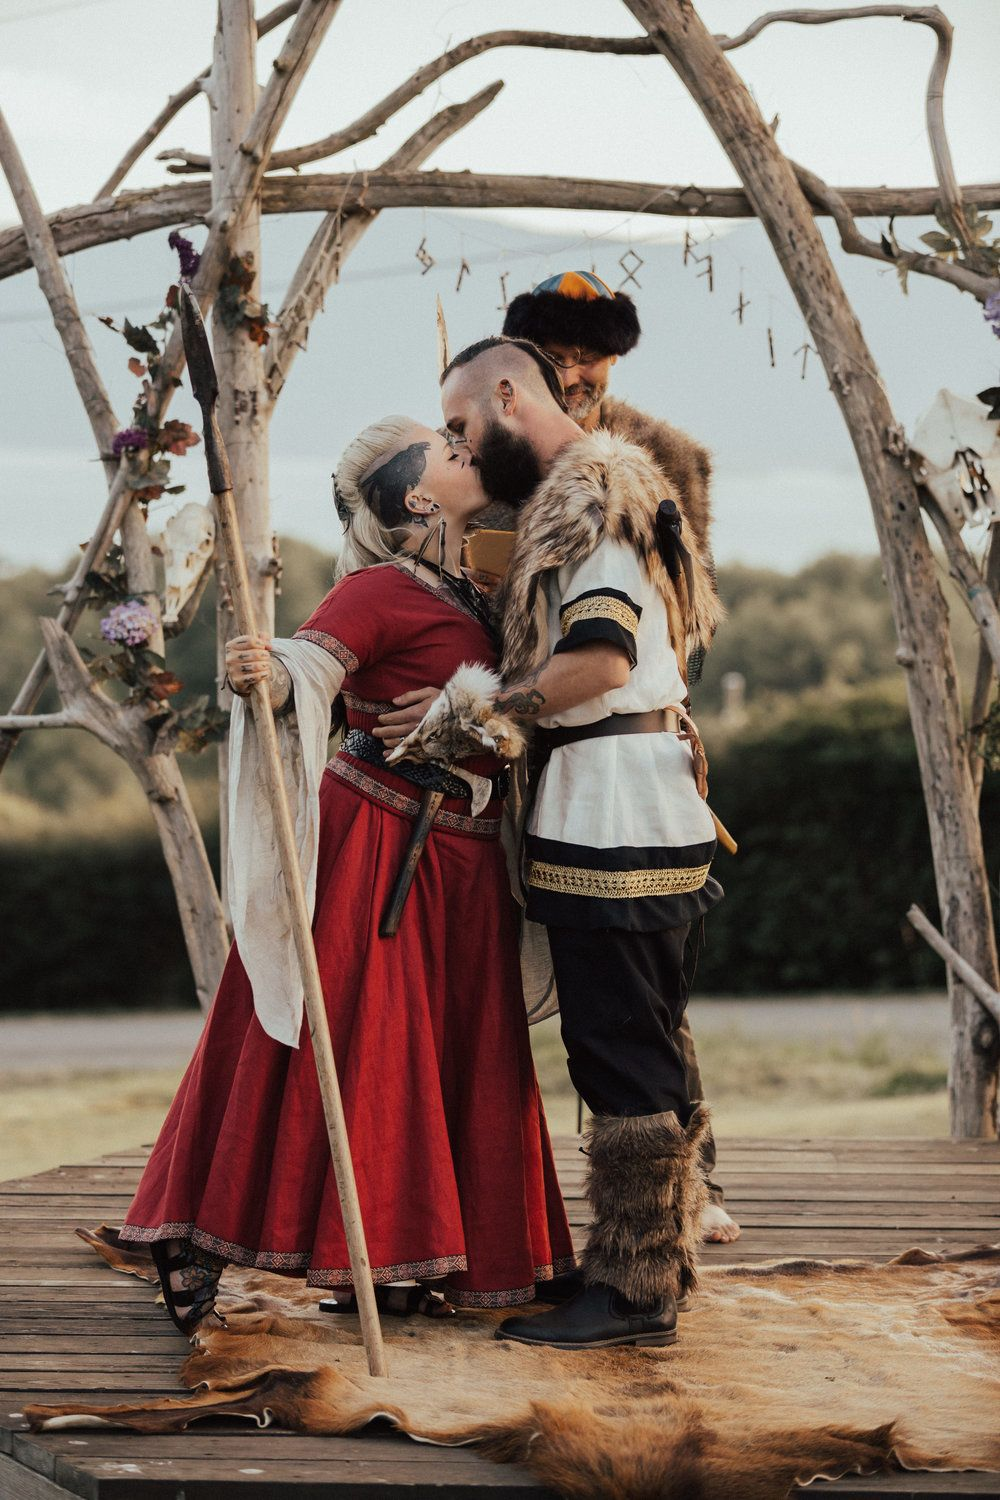 bd73054d447 A Real Viking Wedding - Danielle + Donovan — The Northwest Focus - Seattle  Area Wedding Photographer